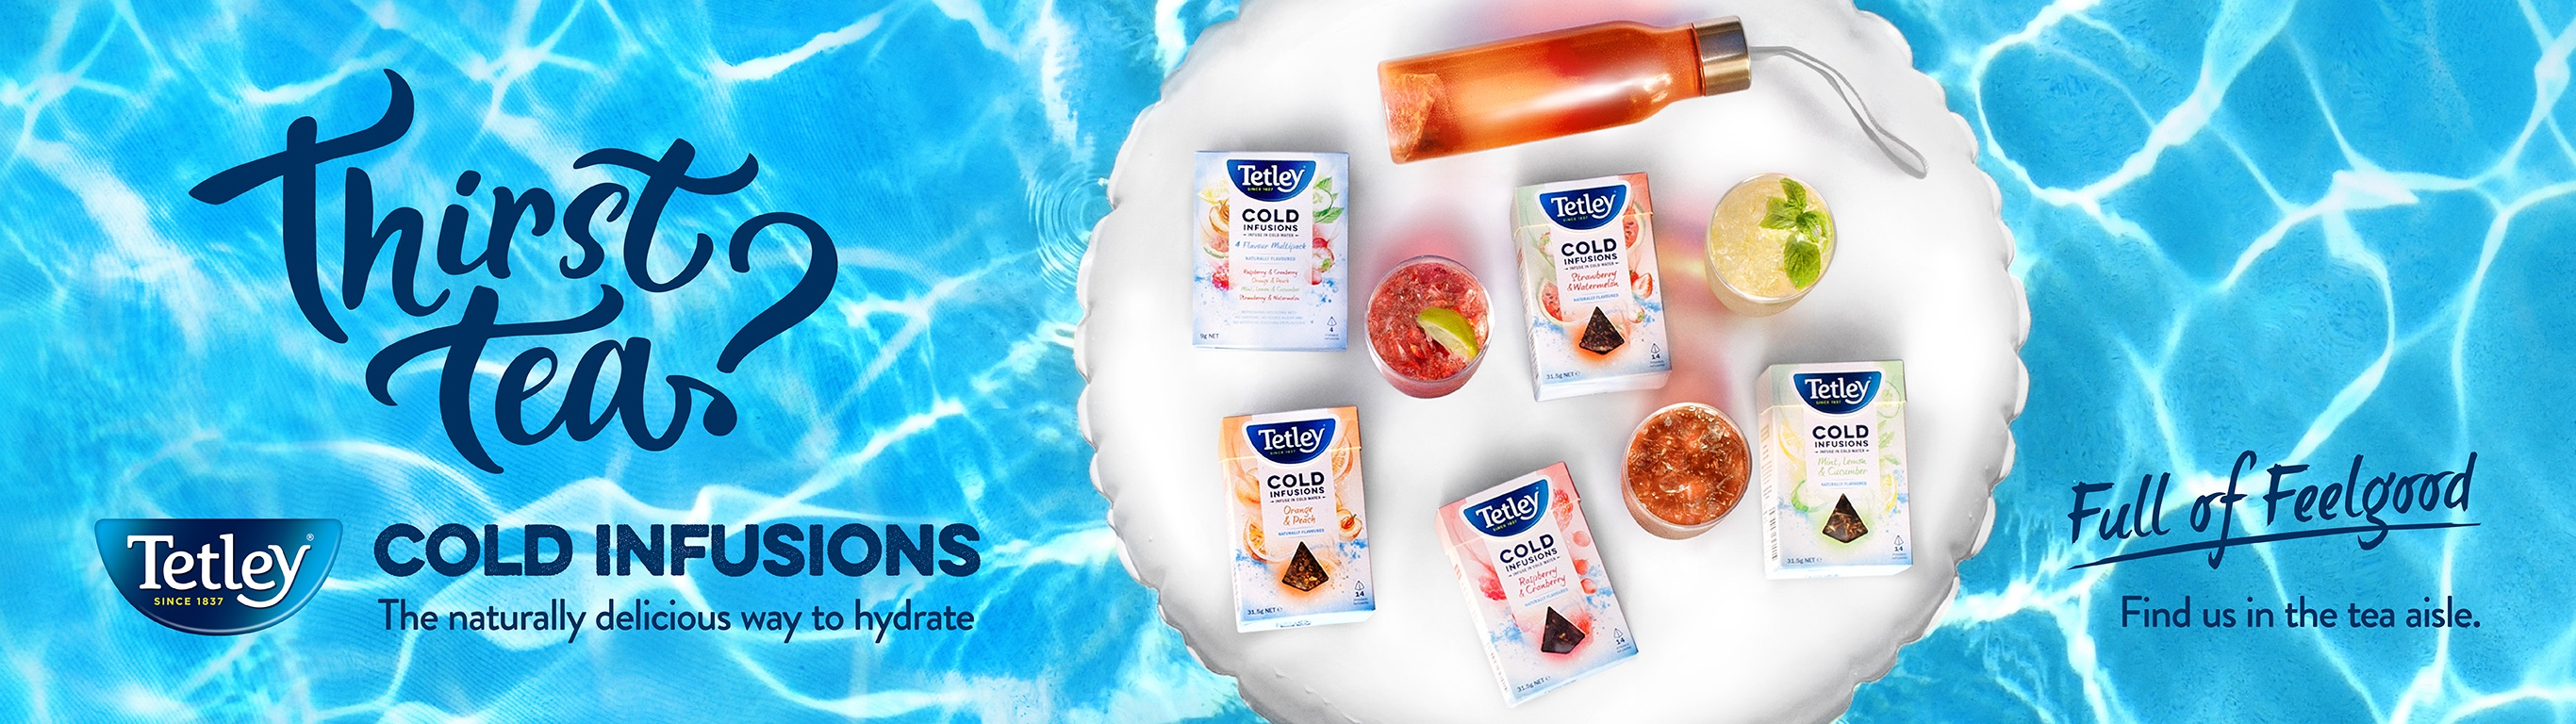 Tetley asks Australians if they are 'Thirst Tea?' in new Cold Infusions campaign via The Works